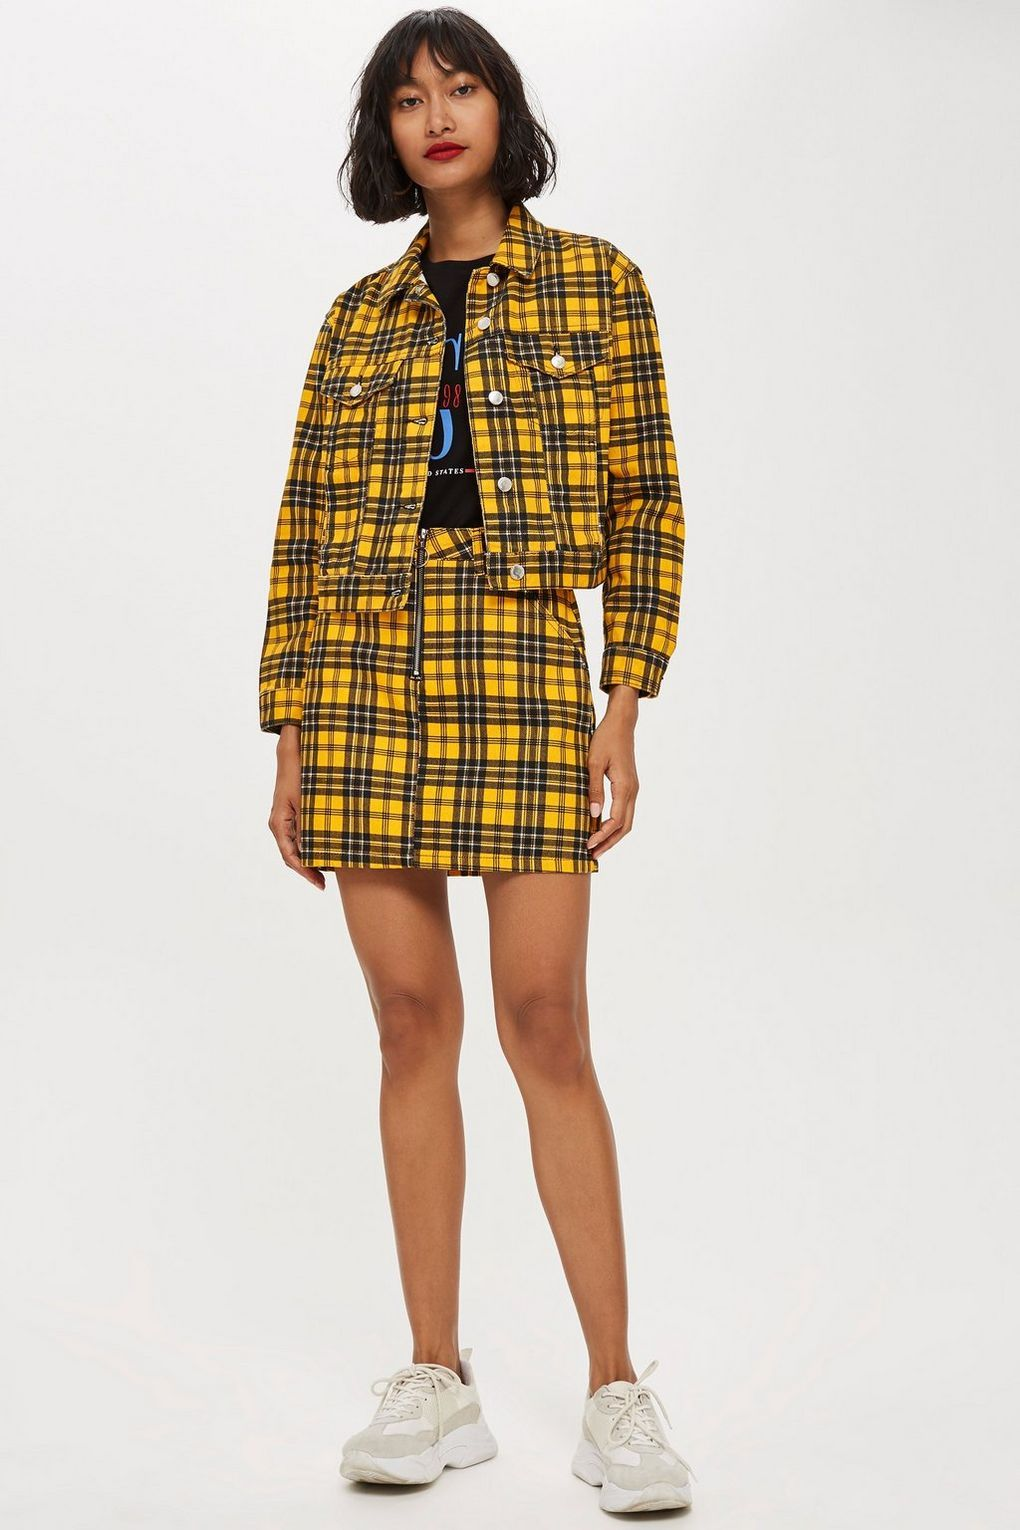 7c90ebca12 Yellow Check Co-ord Set - Suits & Co-ords - Clothing - Topshop USA ...